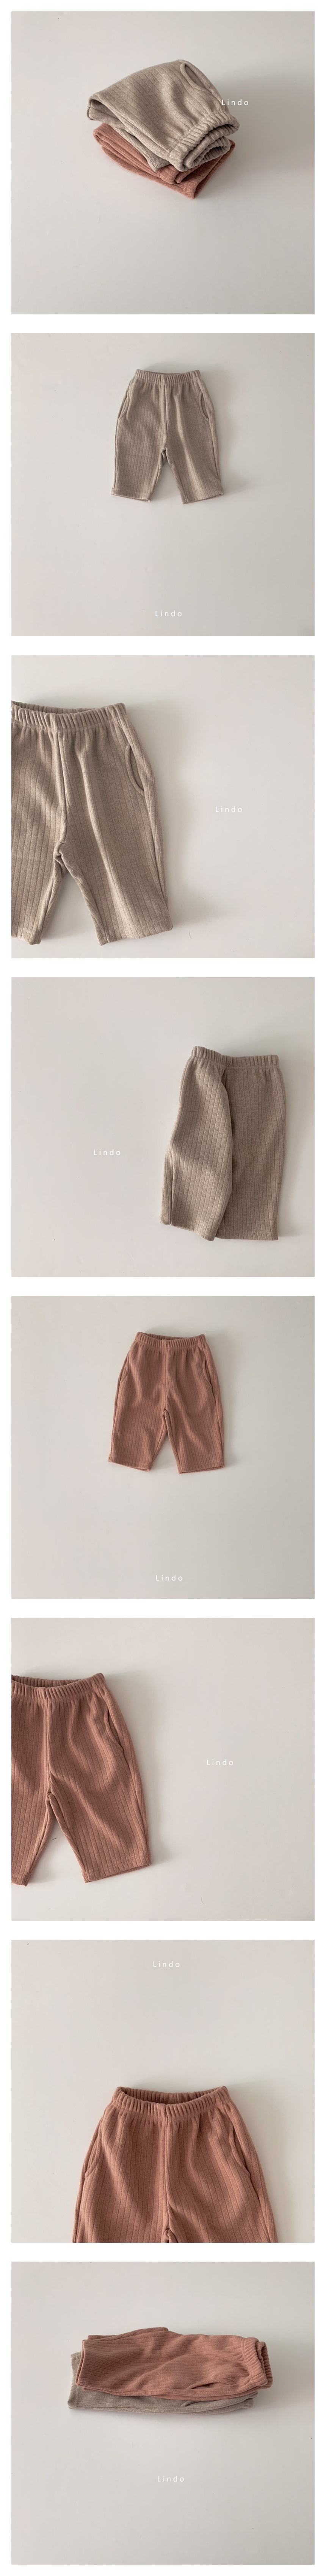 LINDO - Korean Children Fashion - #Kfashion4kids - Knit Pants